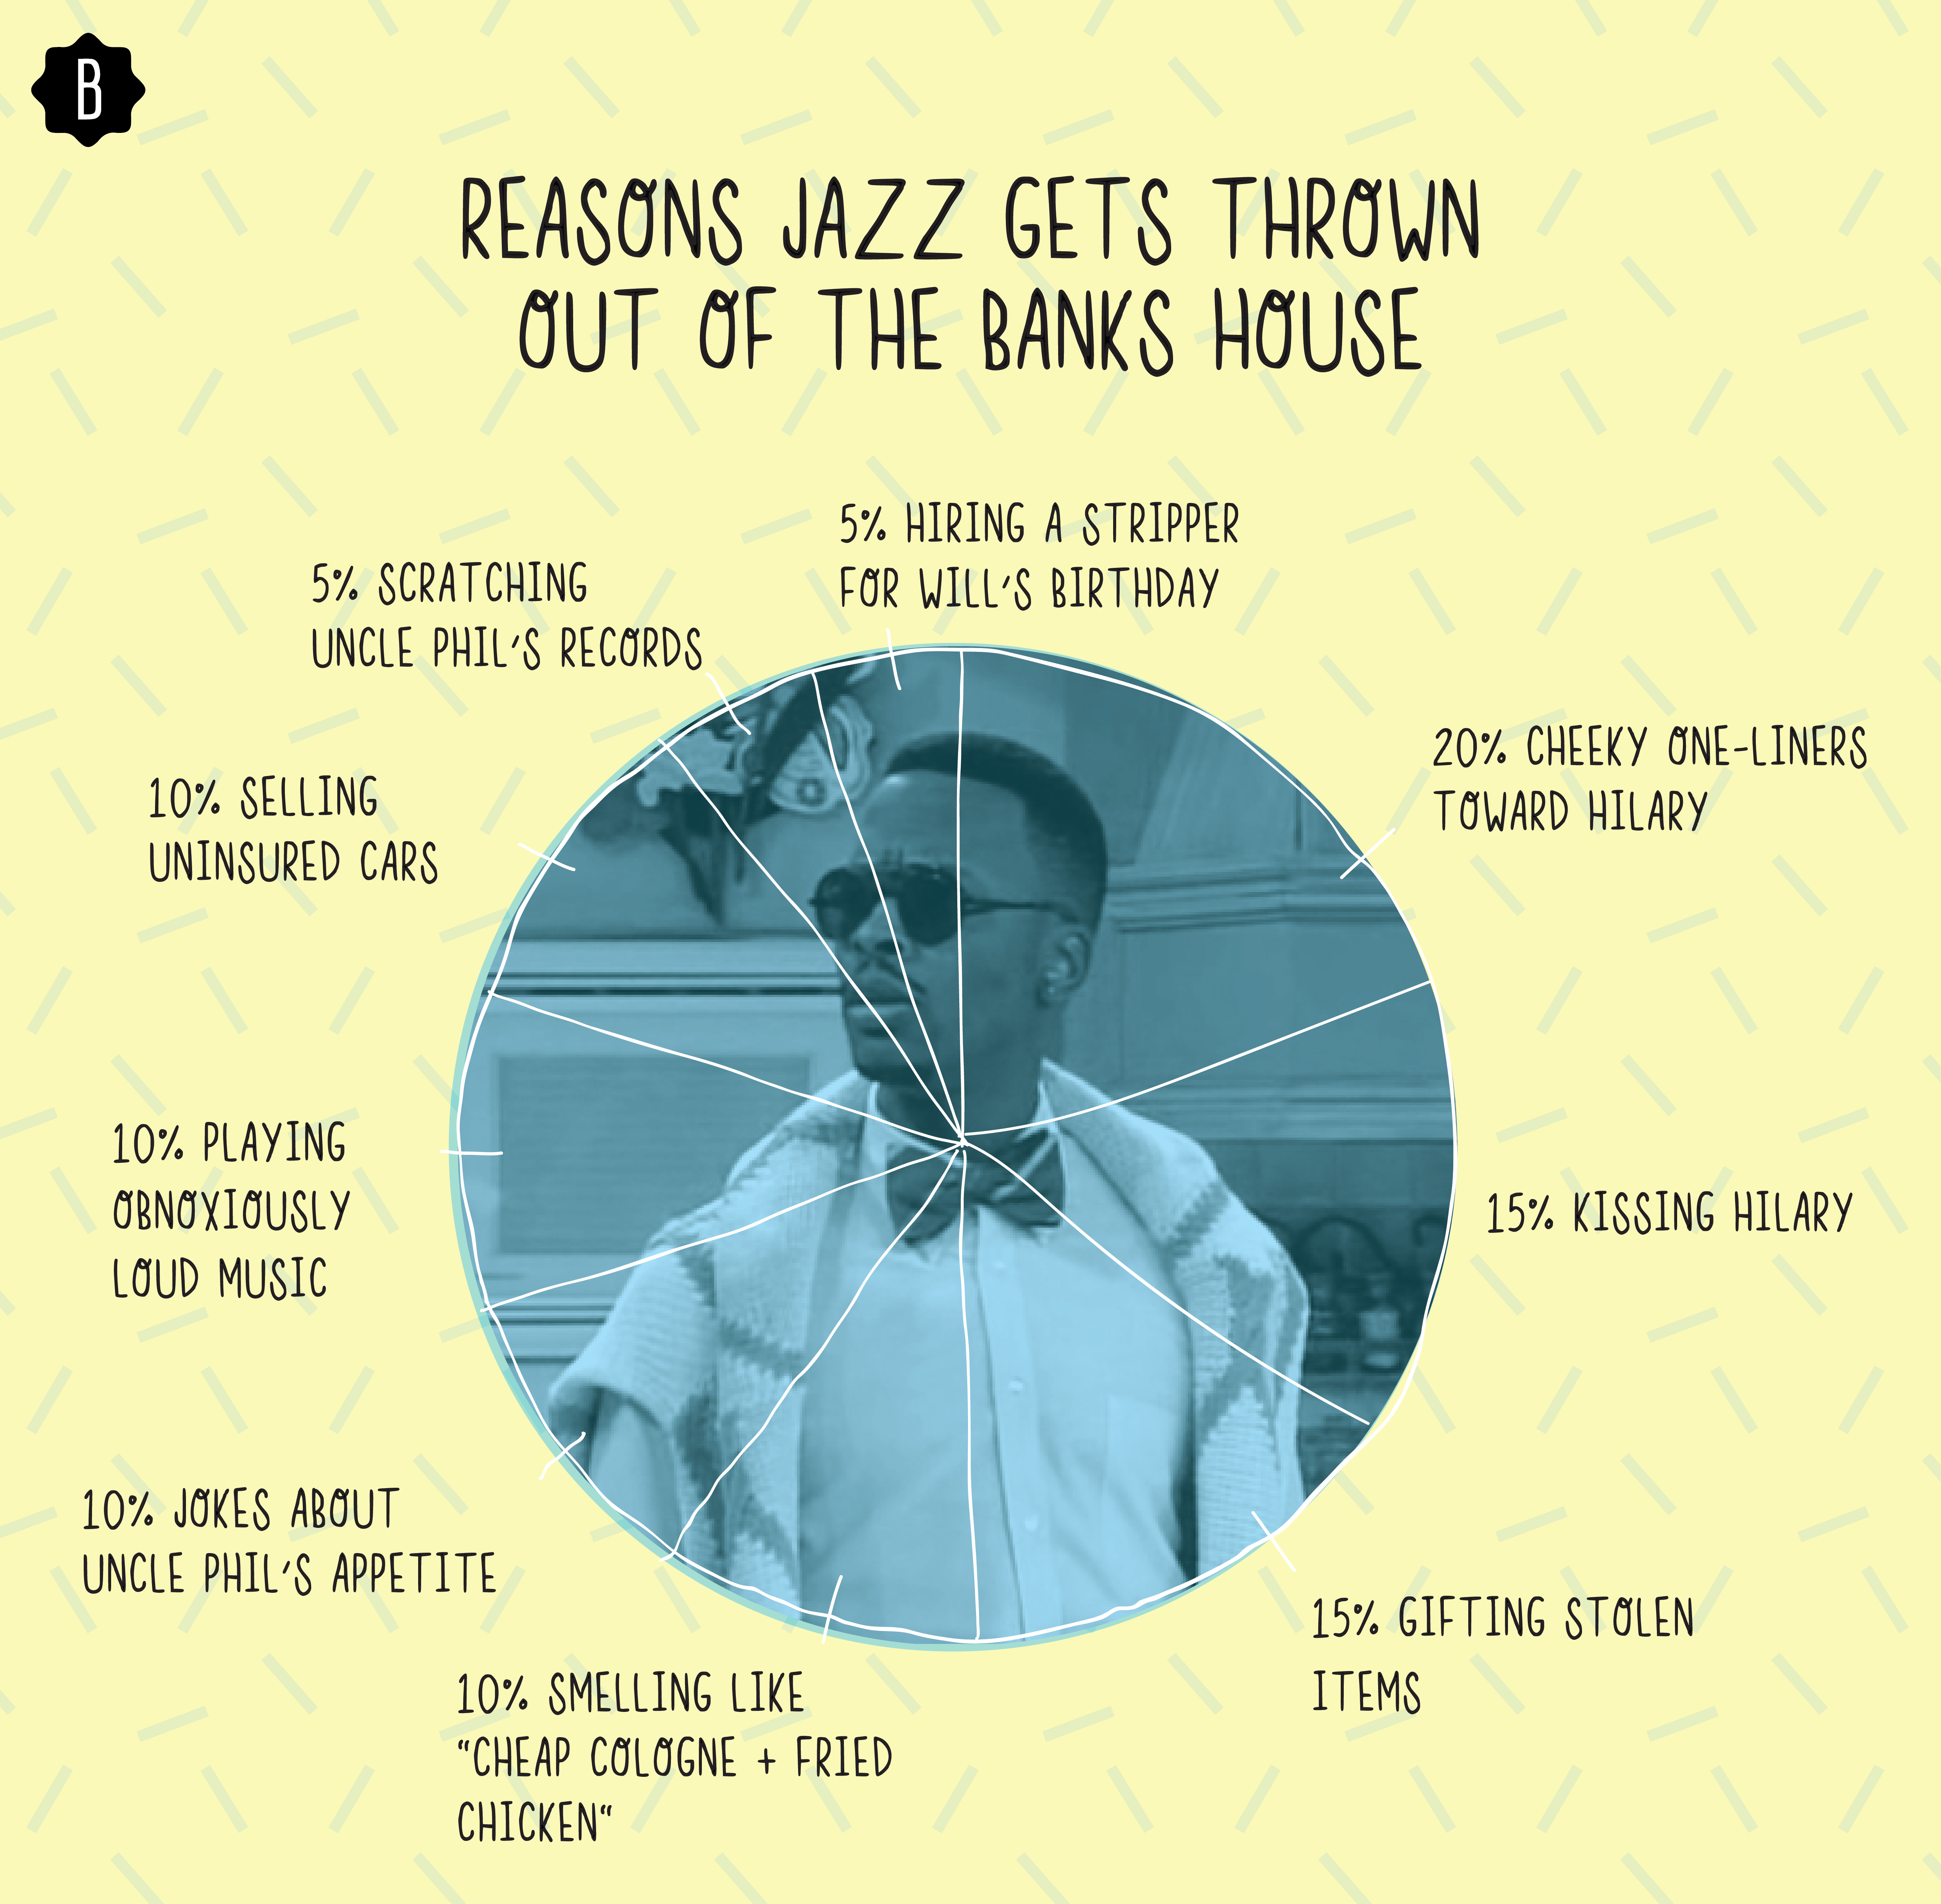 Every Reason Jazz Got Thrown Out On 'fresh Prince' - Circle (5083x4986), Png Download